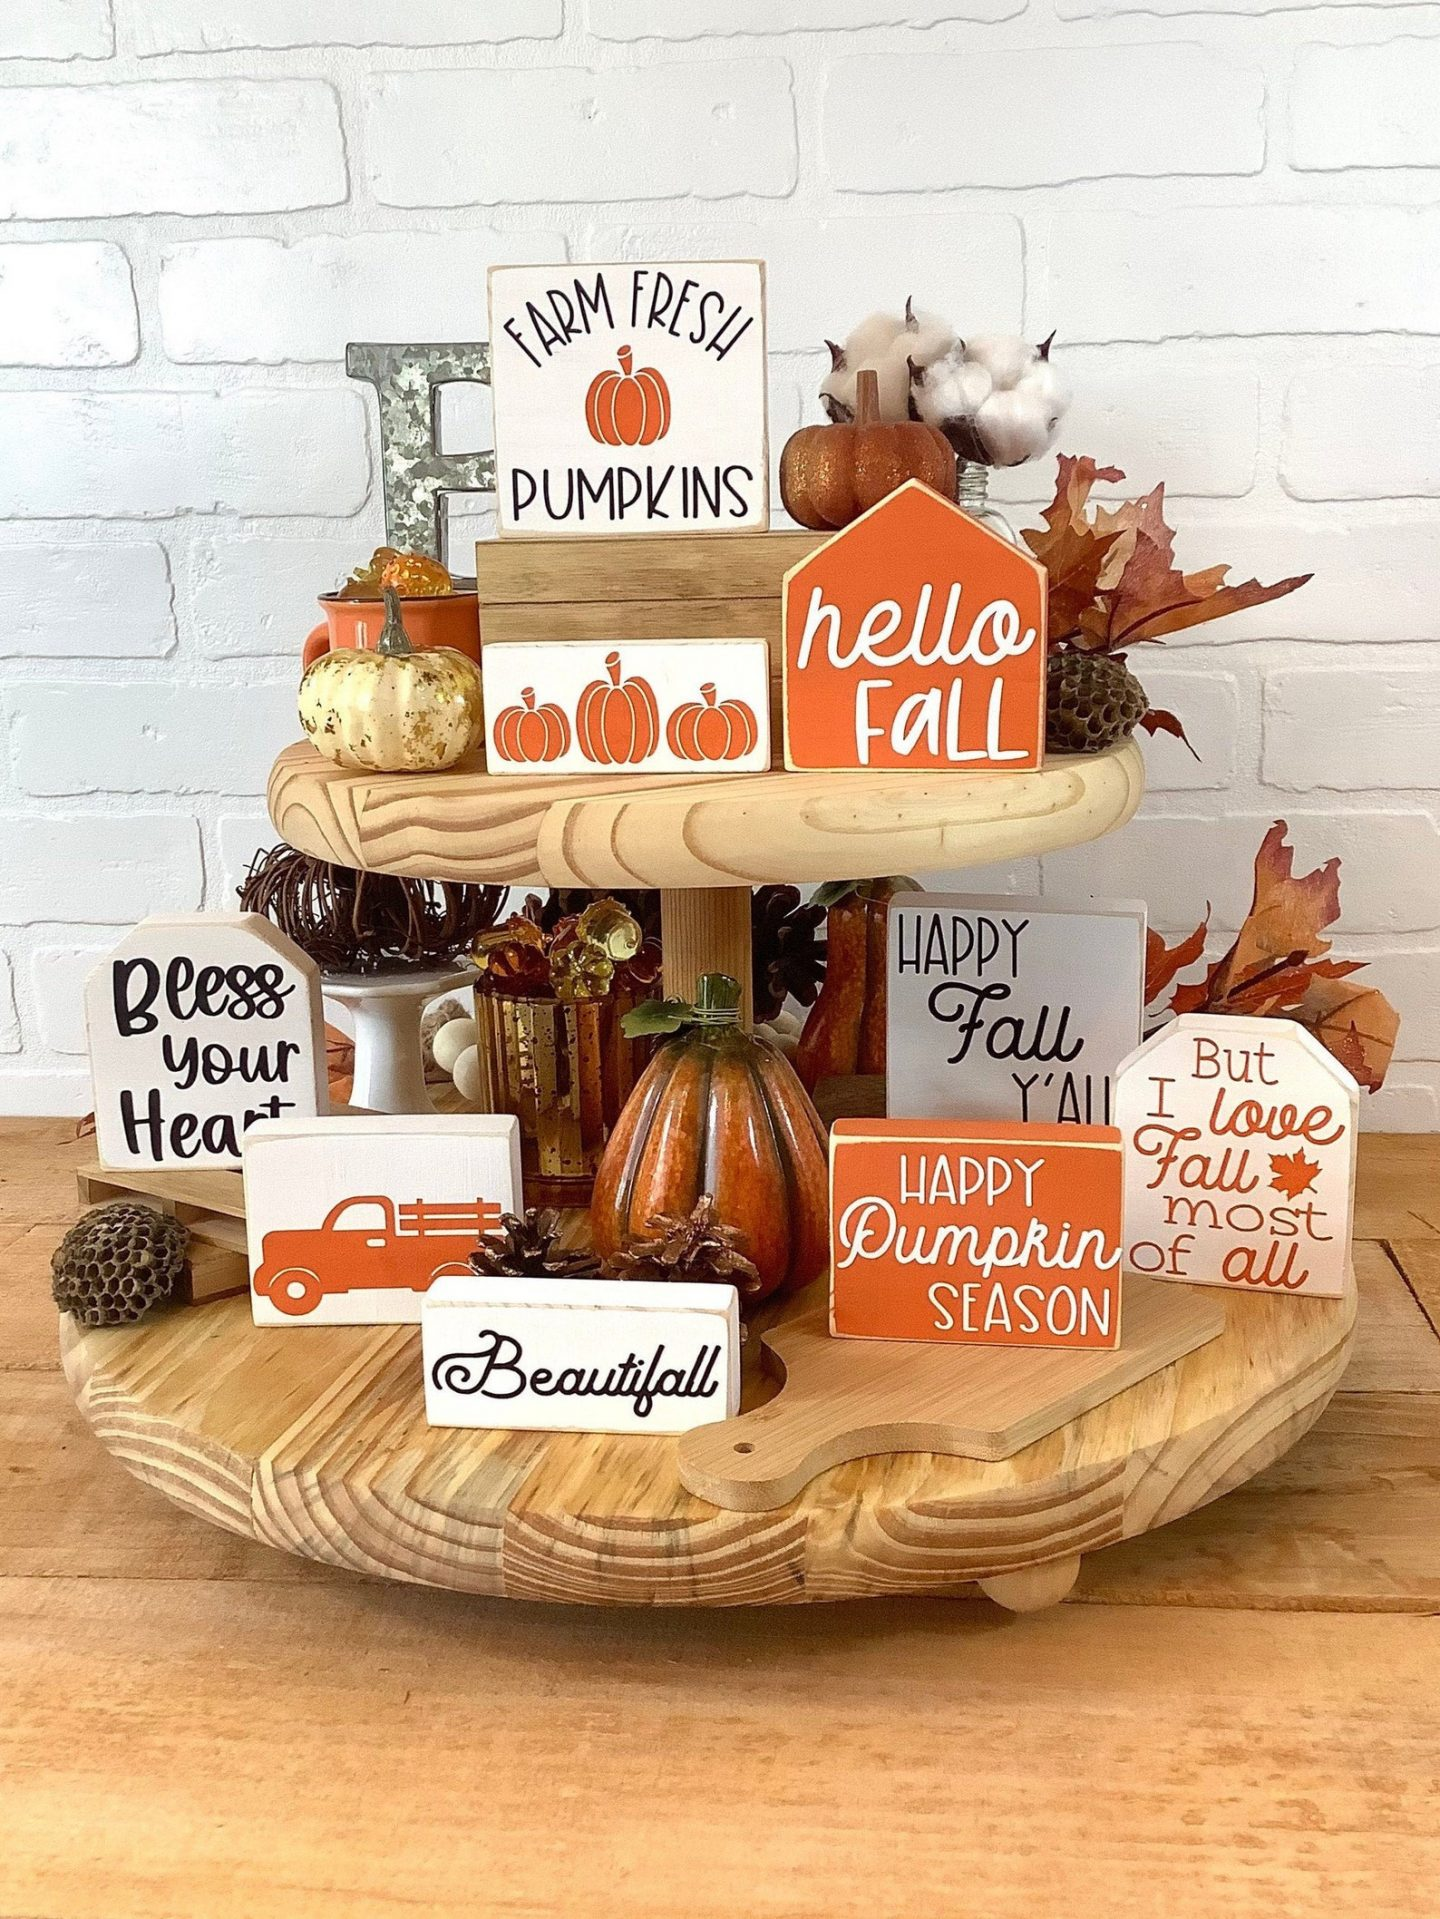 Hello Fall Tiered Tray Signs